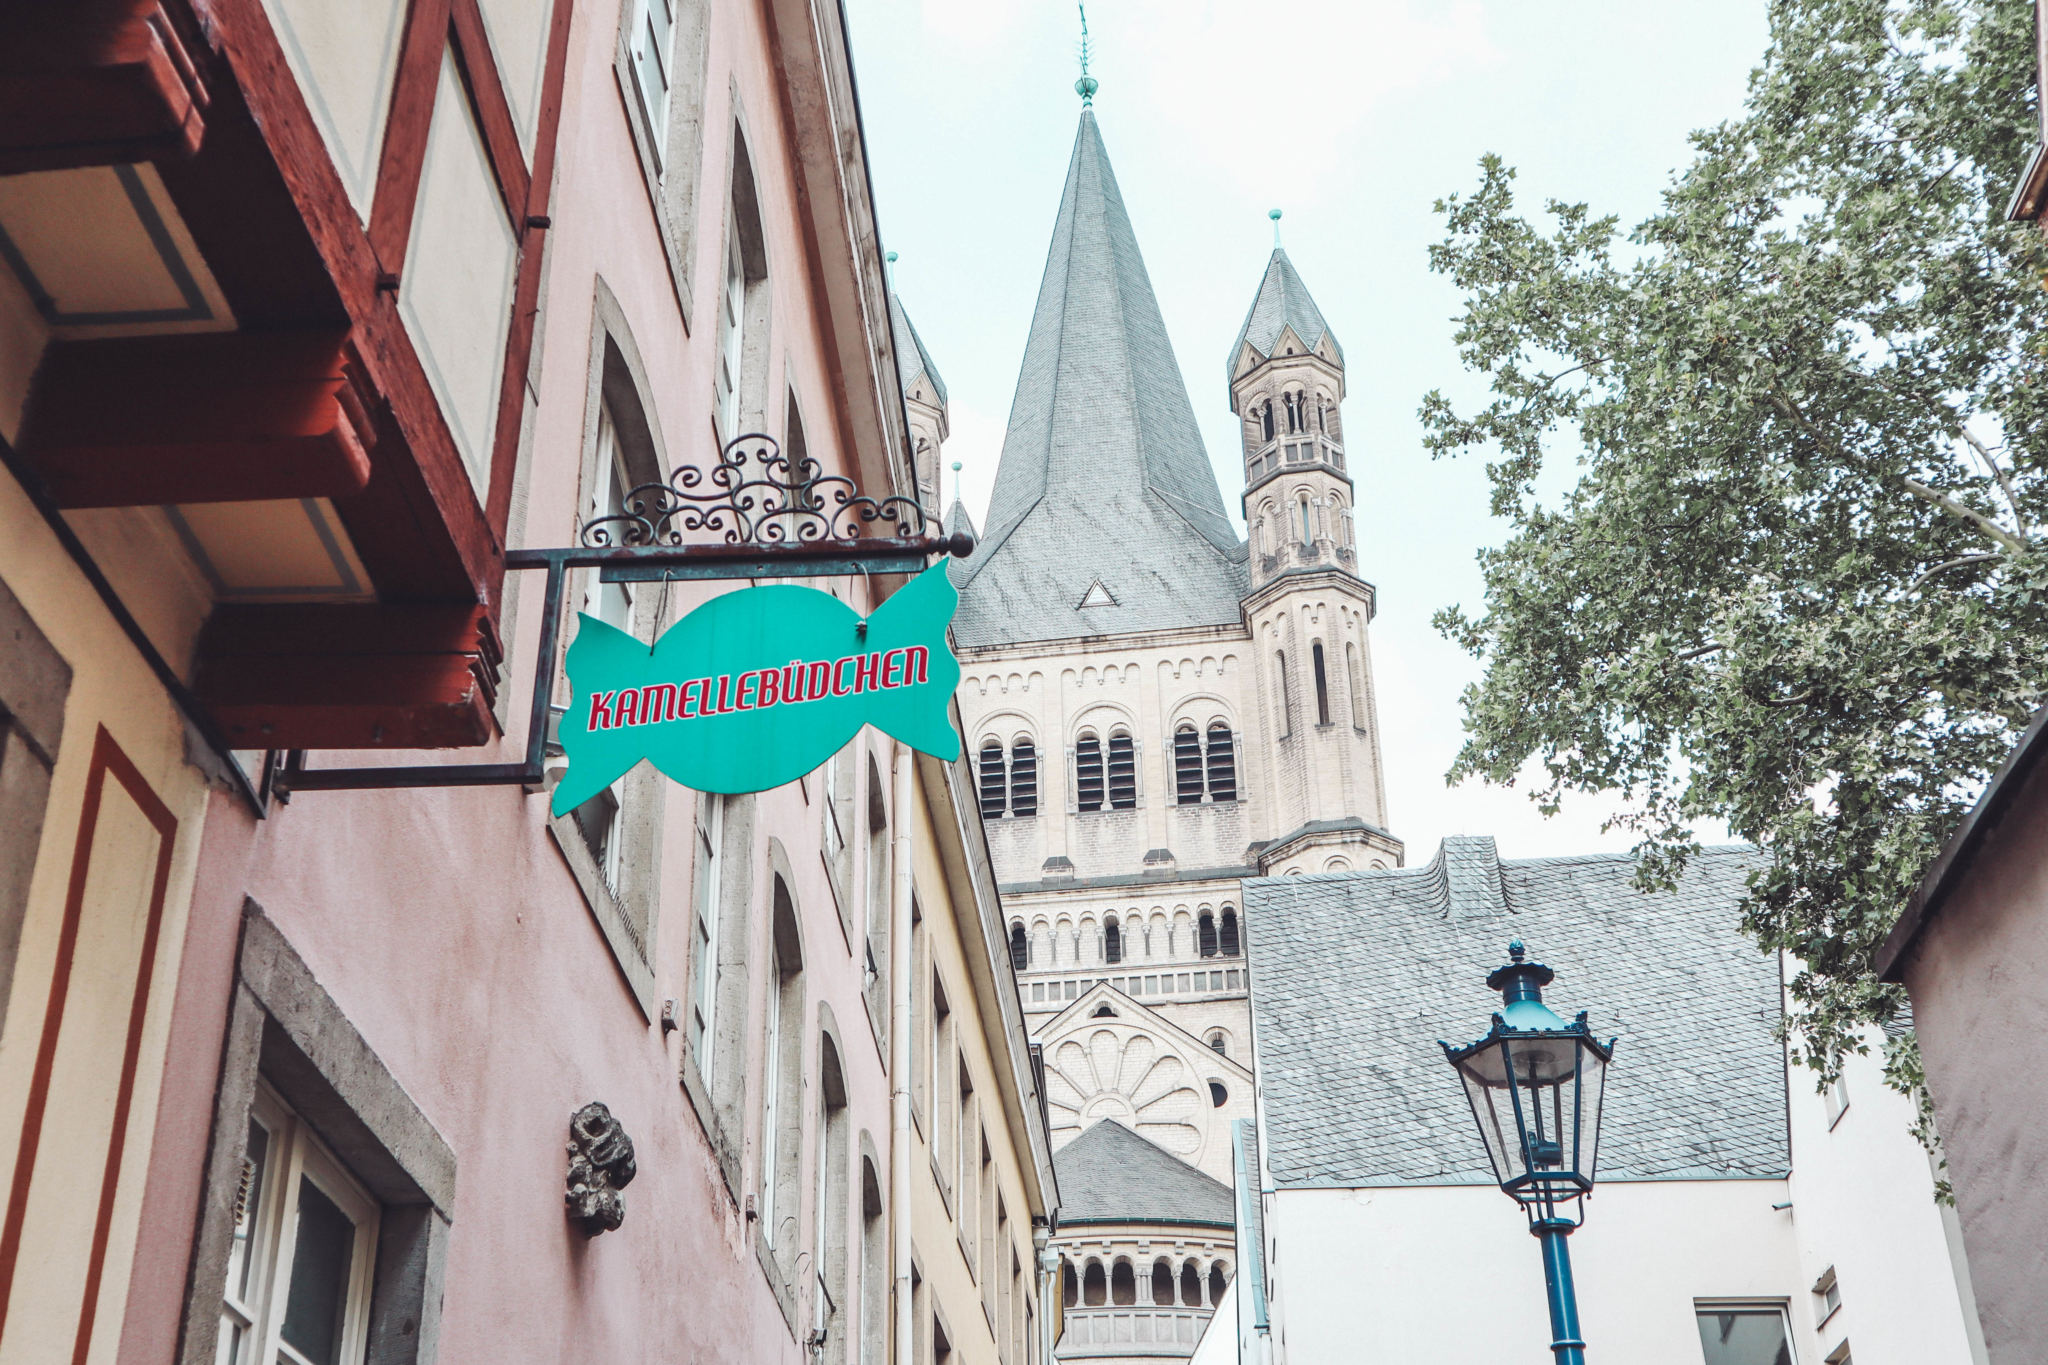 Olivia Leaves | 48 Hours in Cologne